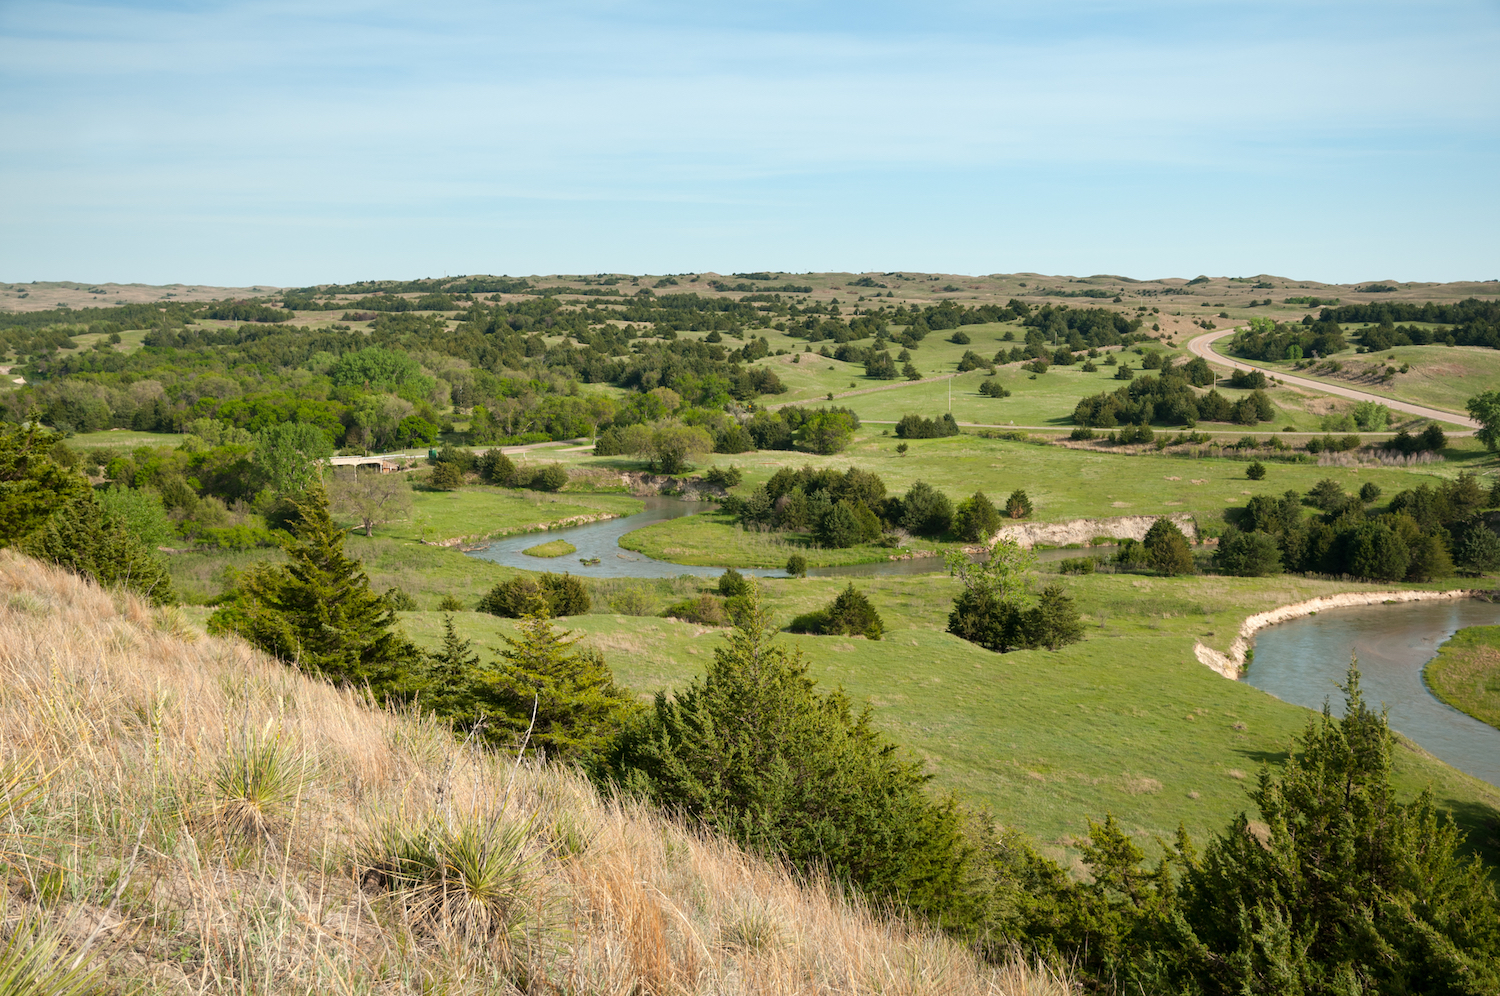 Sandhillls in Nebraska from scenic overlook